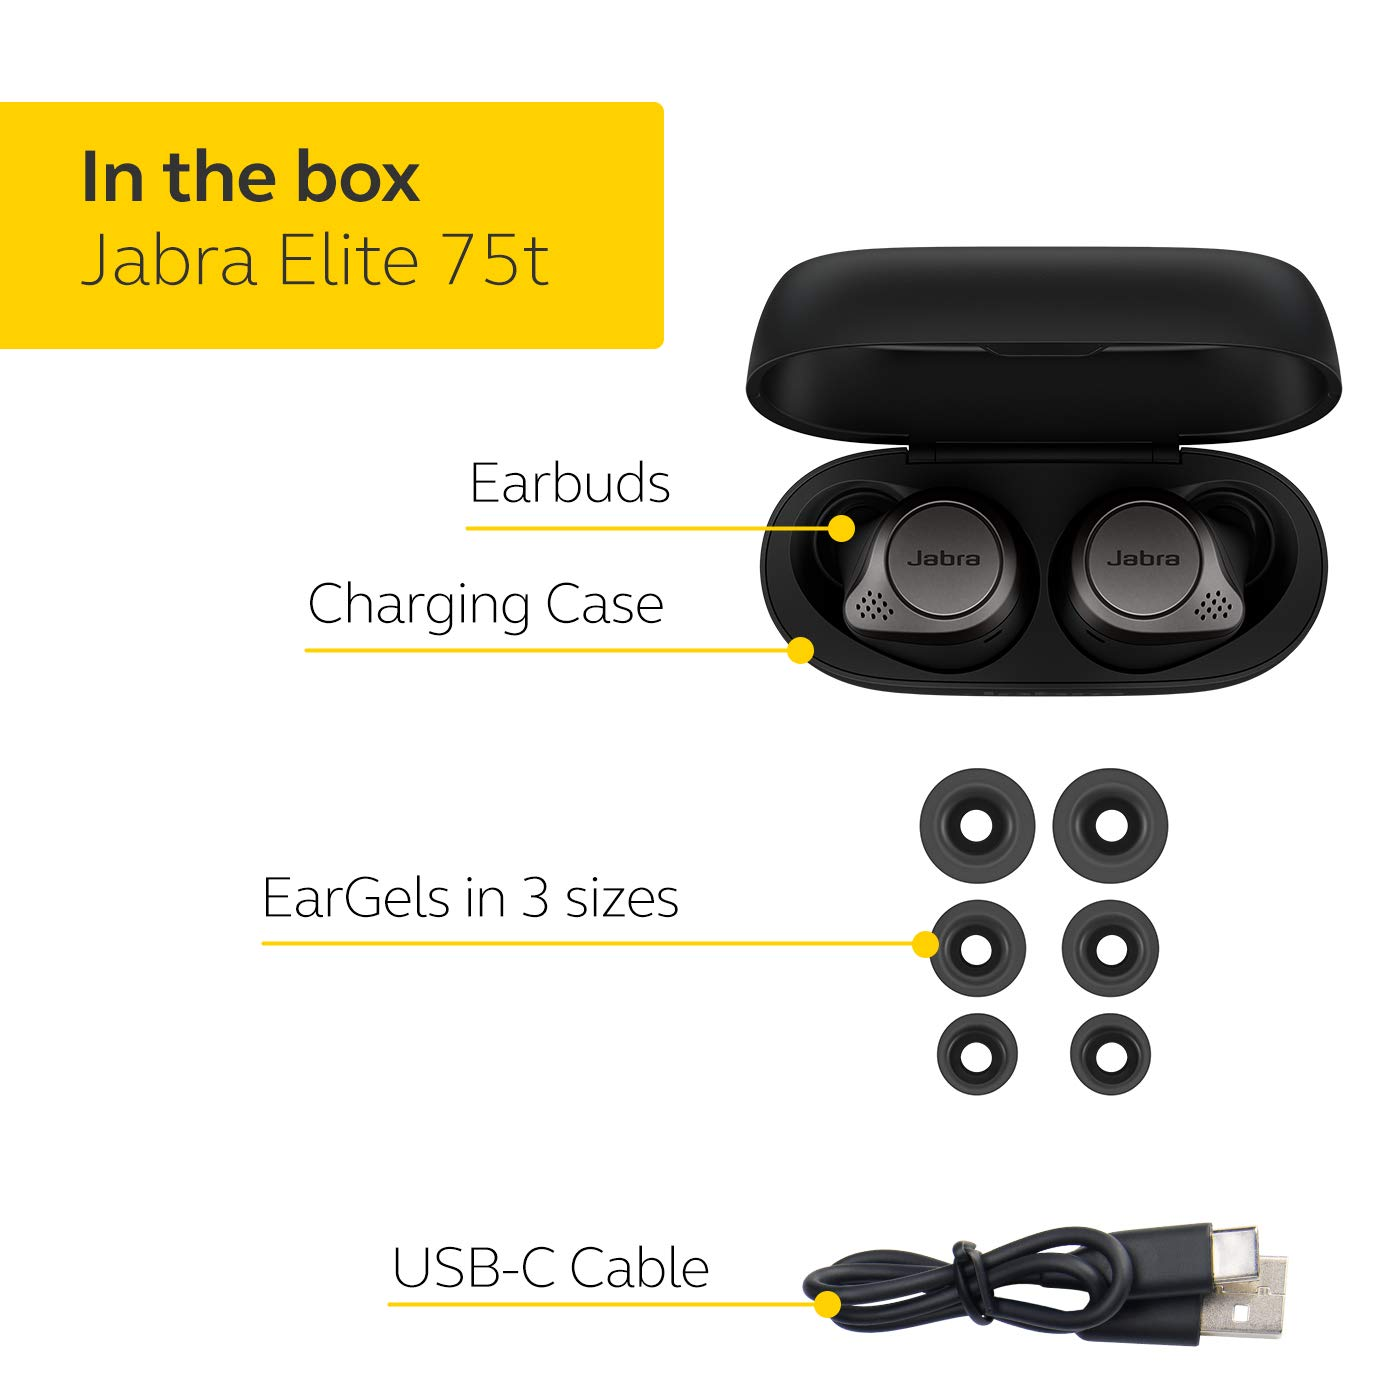 Jabra Elite 75t Earbuds Alexa Enabled True Wireless Earbuds With Charging Case Titanium Black Bluetooth Earbuds With A More Comfortable Secure Fit Long Battery Life And Great Sound Quality Pharaoh Athletics